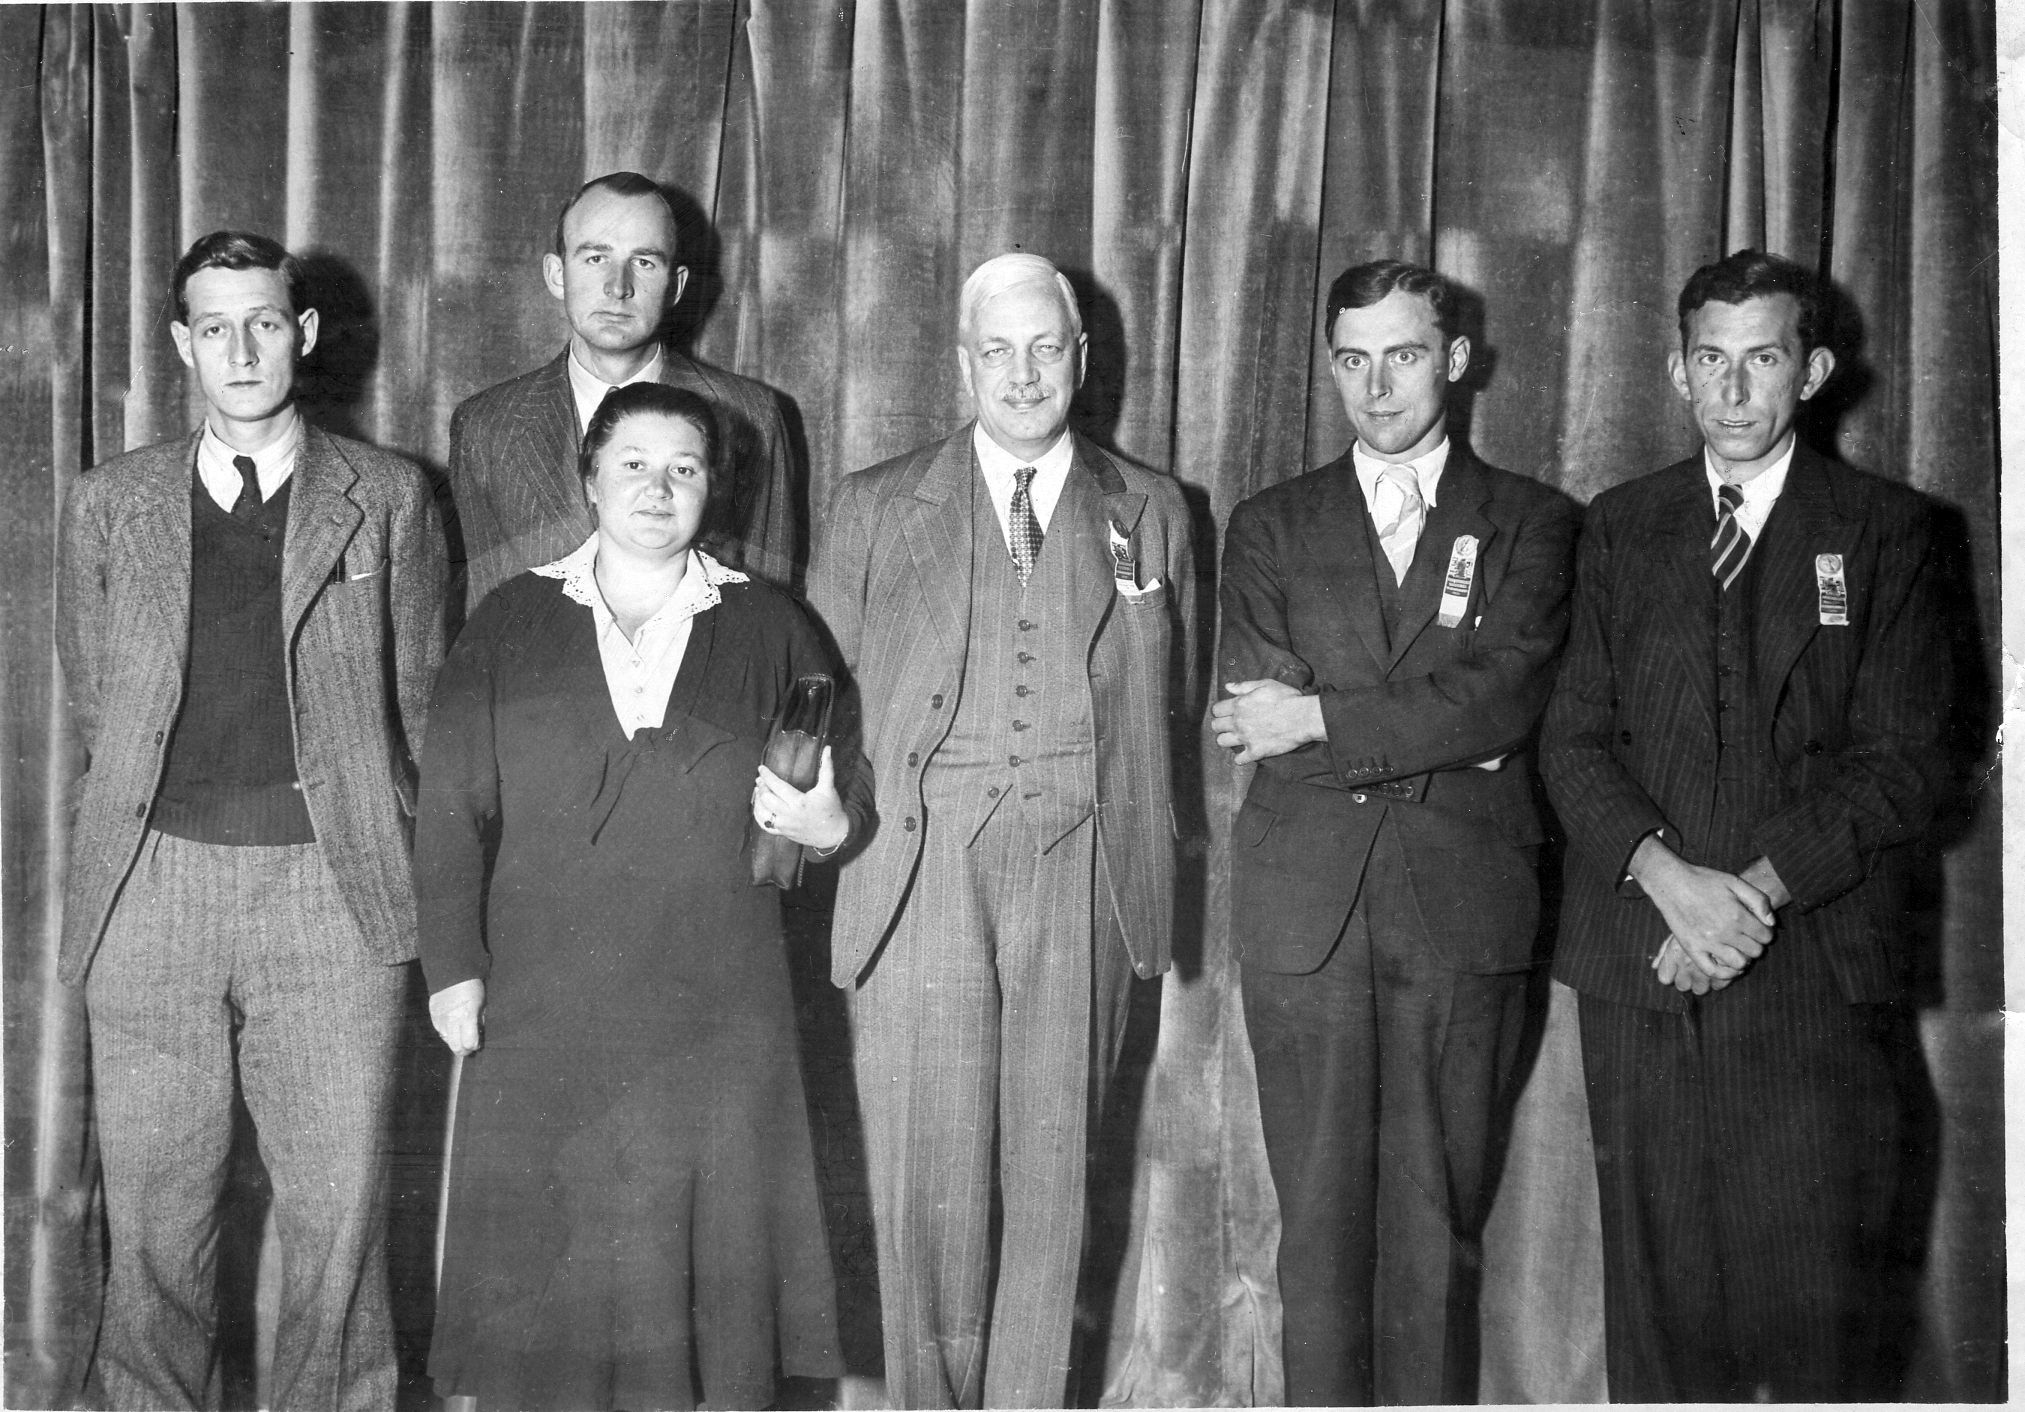 Left to right Baruch H Wood, Philip Stuart Milner-Barry, Vera Menchik (playing in the women's world championship (held concurrently with the 1939 Buenos Aires Olympiad) which she won with 17 wins and 2 draws), Sir George Thomas, Conel Hugh O'Donel Alexander and Harry Golombek. England withdrew after their preliminary group due to the outbreak of war despite qualifying for the top final. Thanks to Leonard Barden